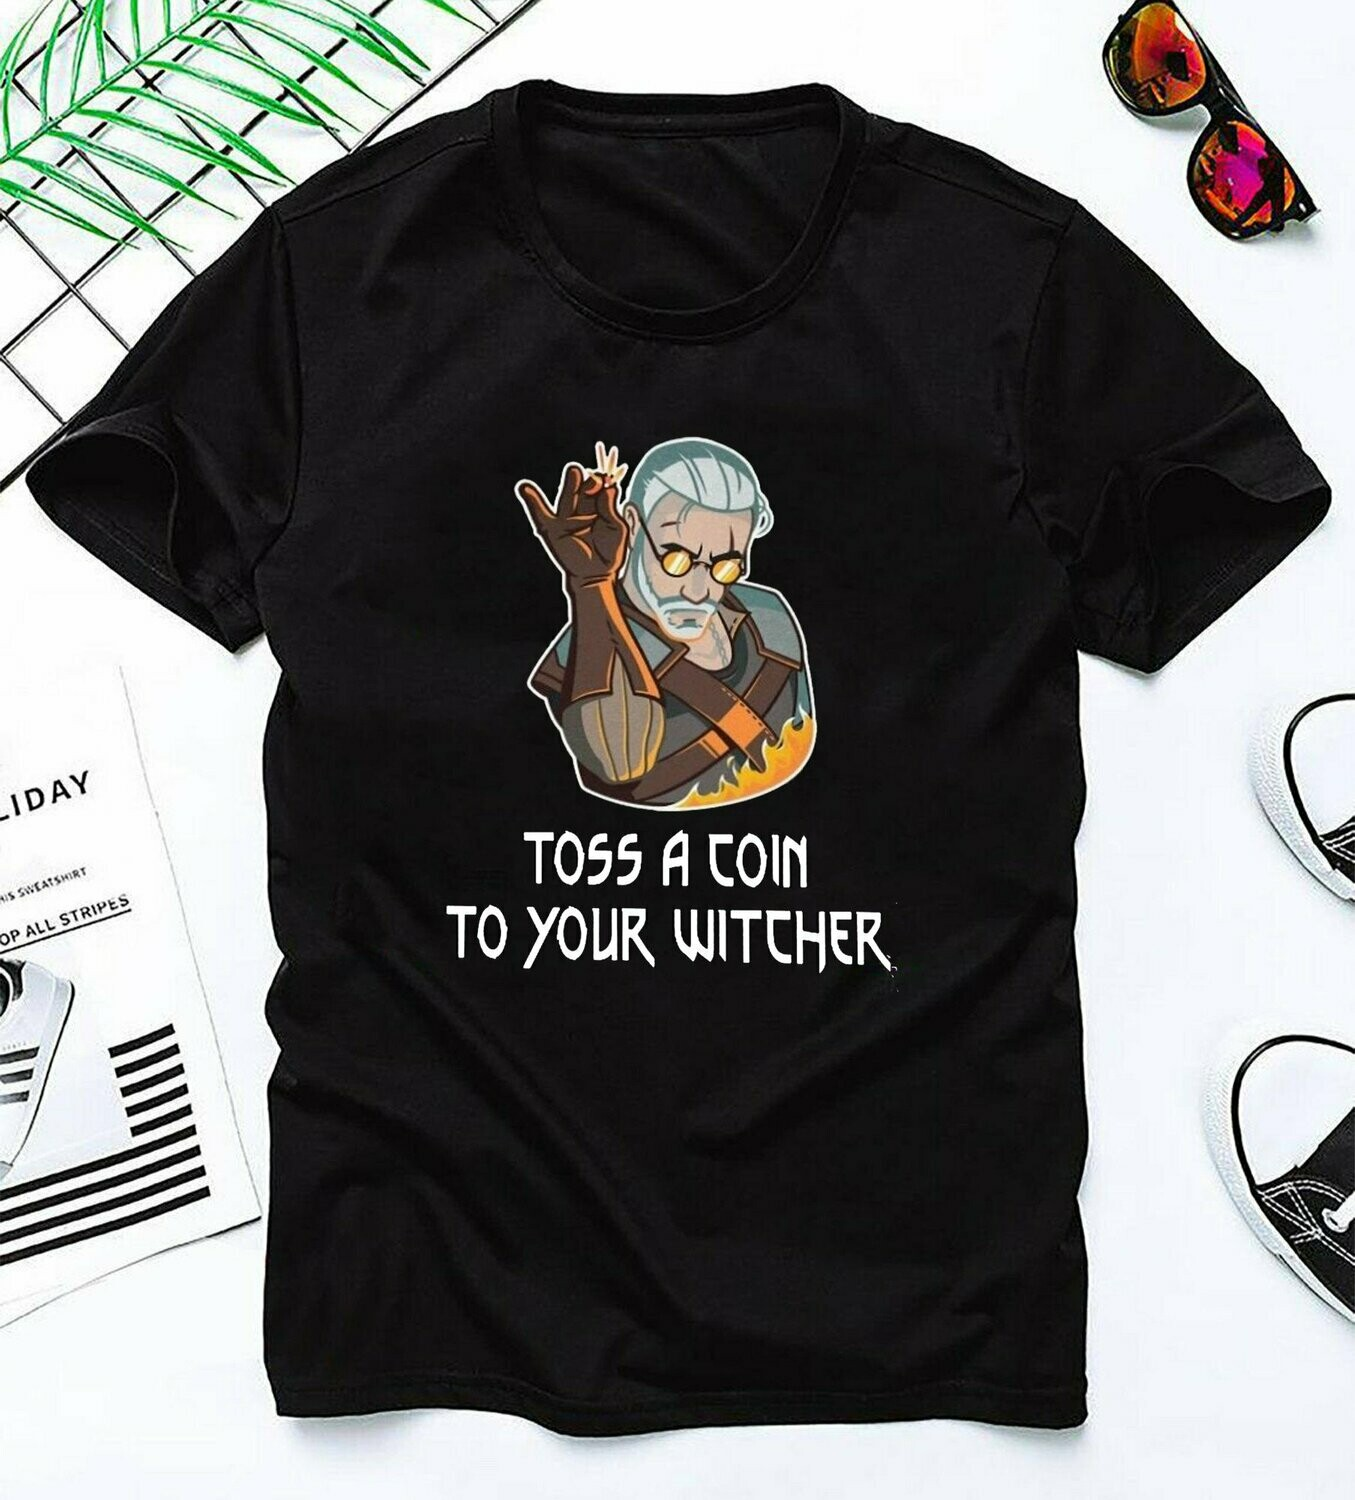 Witcher Geralt Toss a Coin to Your Witcher Funny,Witcher 3 Geralt Of Rivia With Medallion fan gift T Shirt, Witcher Geralt Toss, Coin to Your Witcher, Witcher 3 Geralt, Rivia With Medallion tee